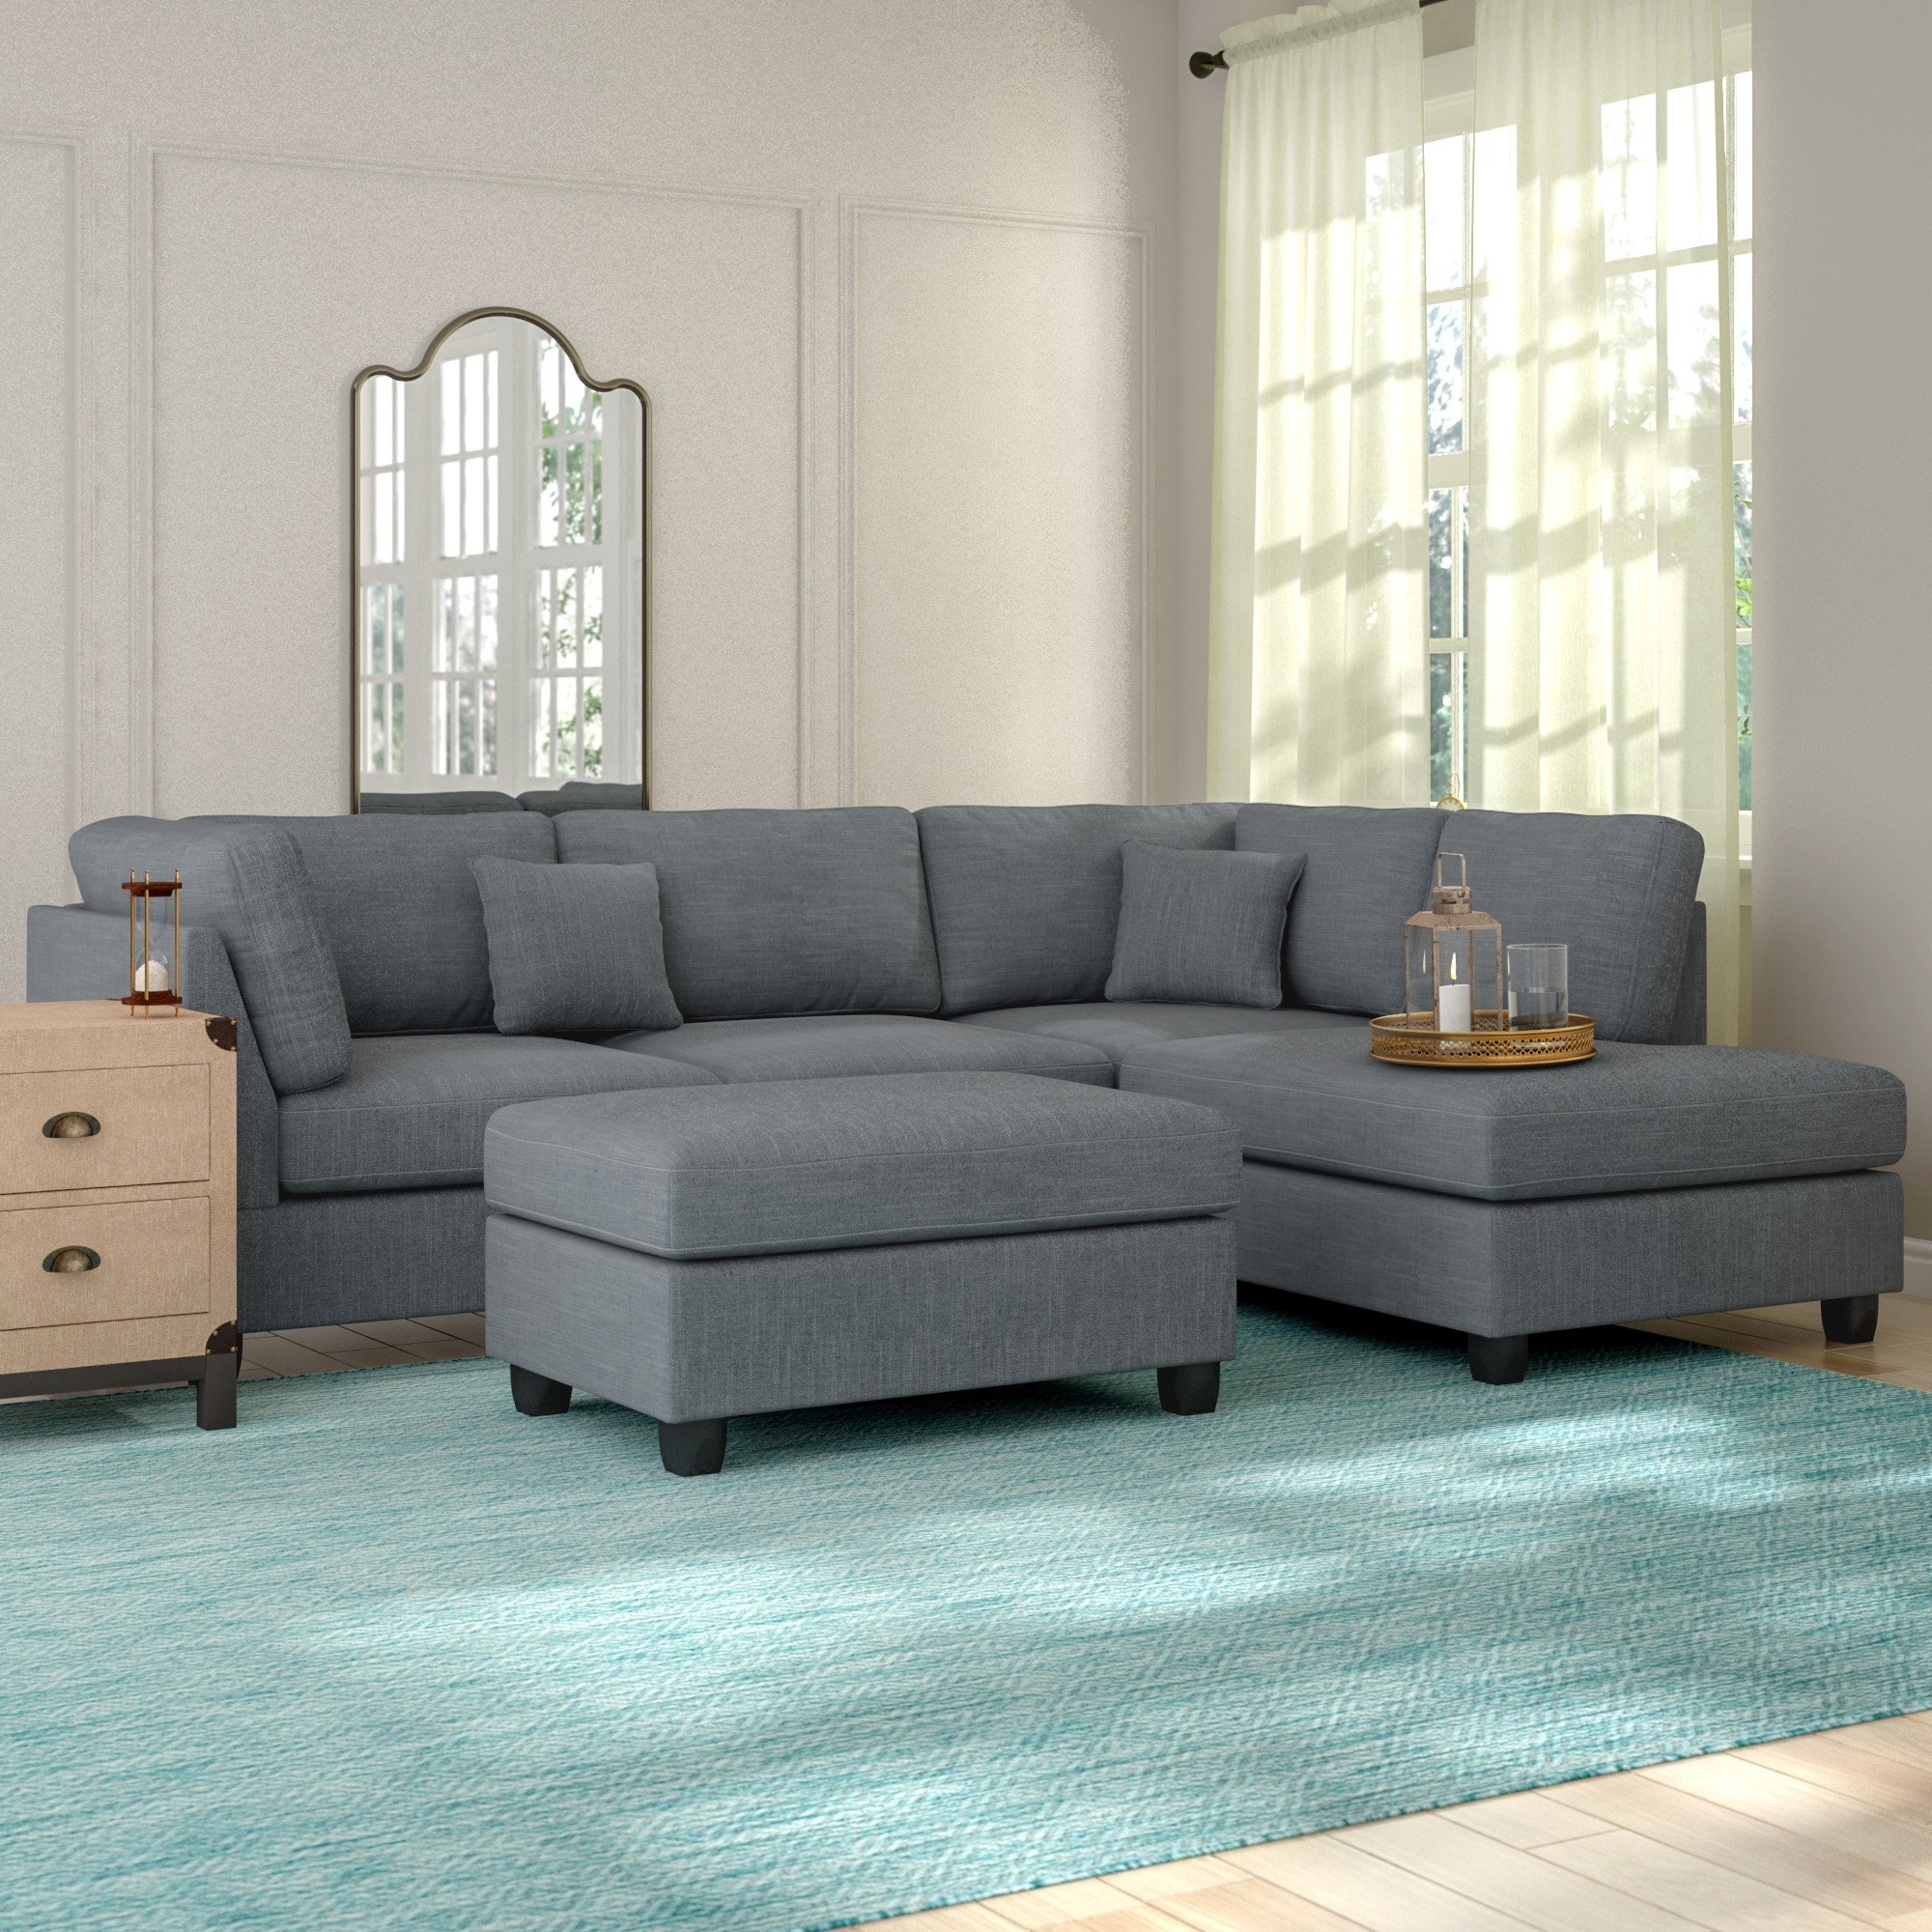 Gray Sectional Couch You'll Love (View 12 of 20)